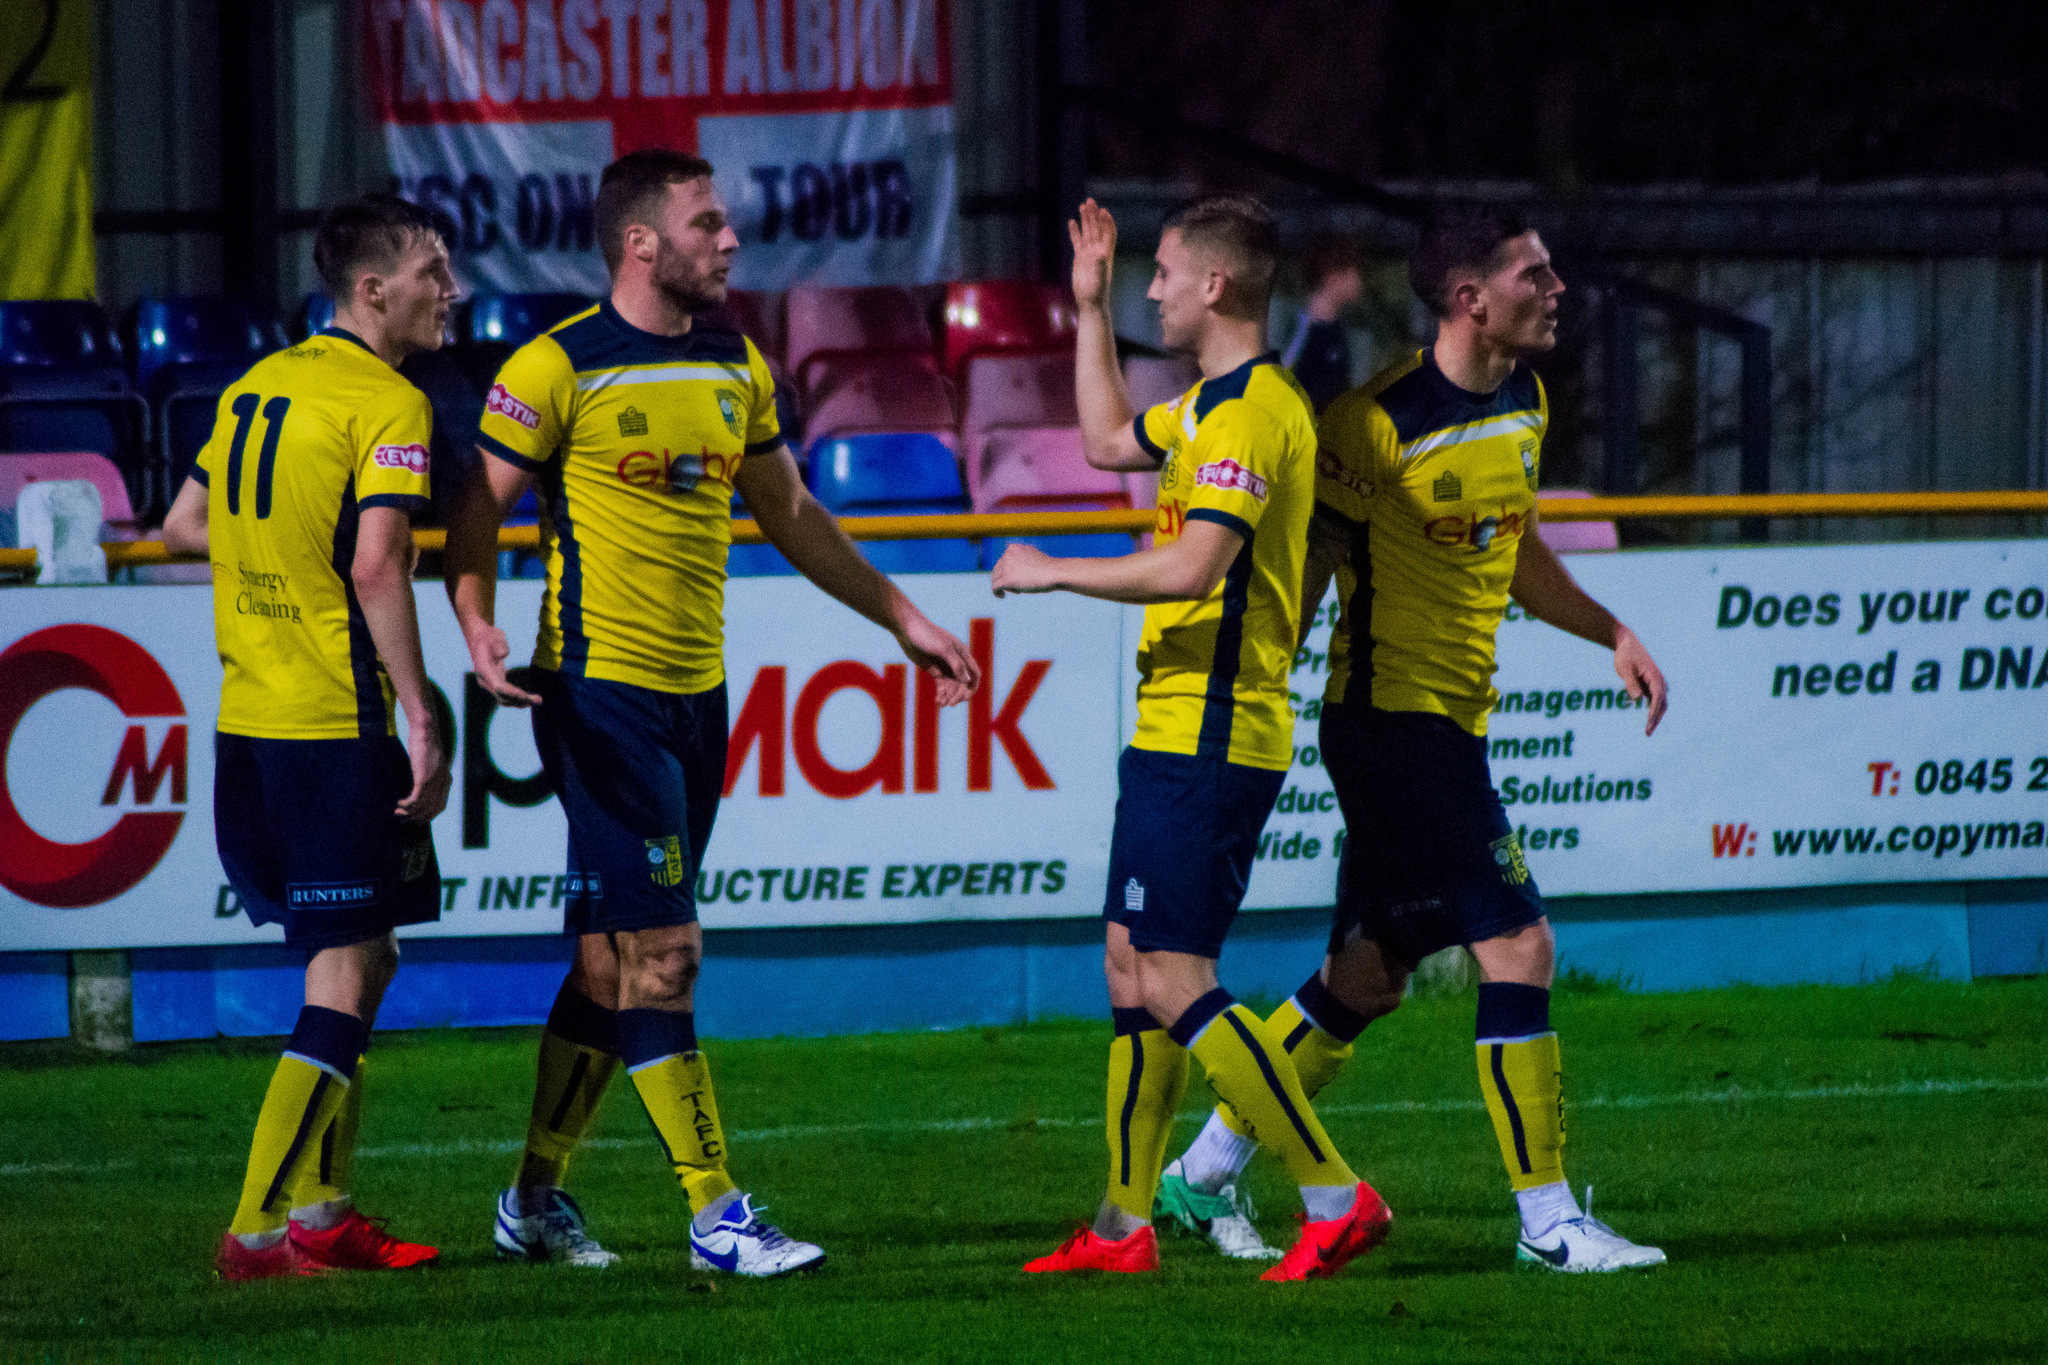 Tadcaster Albion's Aiden Savory is congratulated by his team-mates after scoring during the West Riding County Cup match against Guiseley at the i2i Stadium. Picture: Matthew Appleby